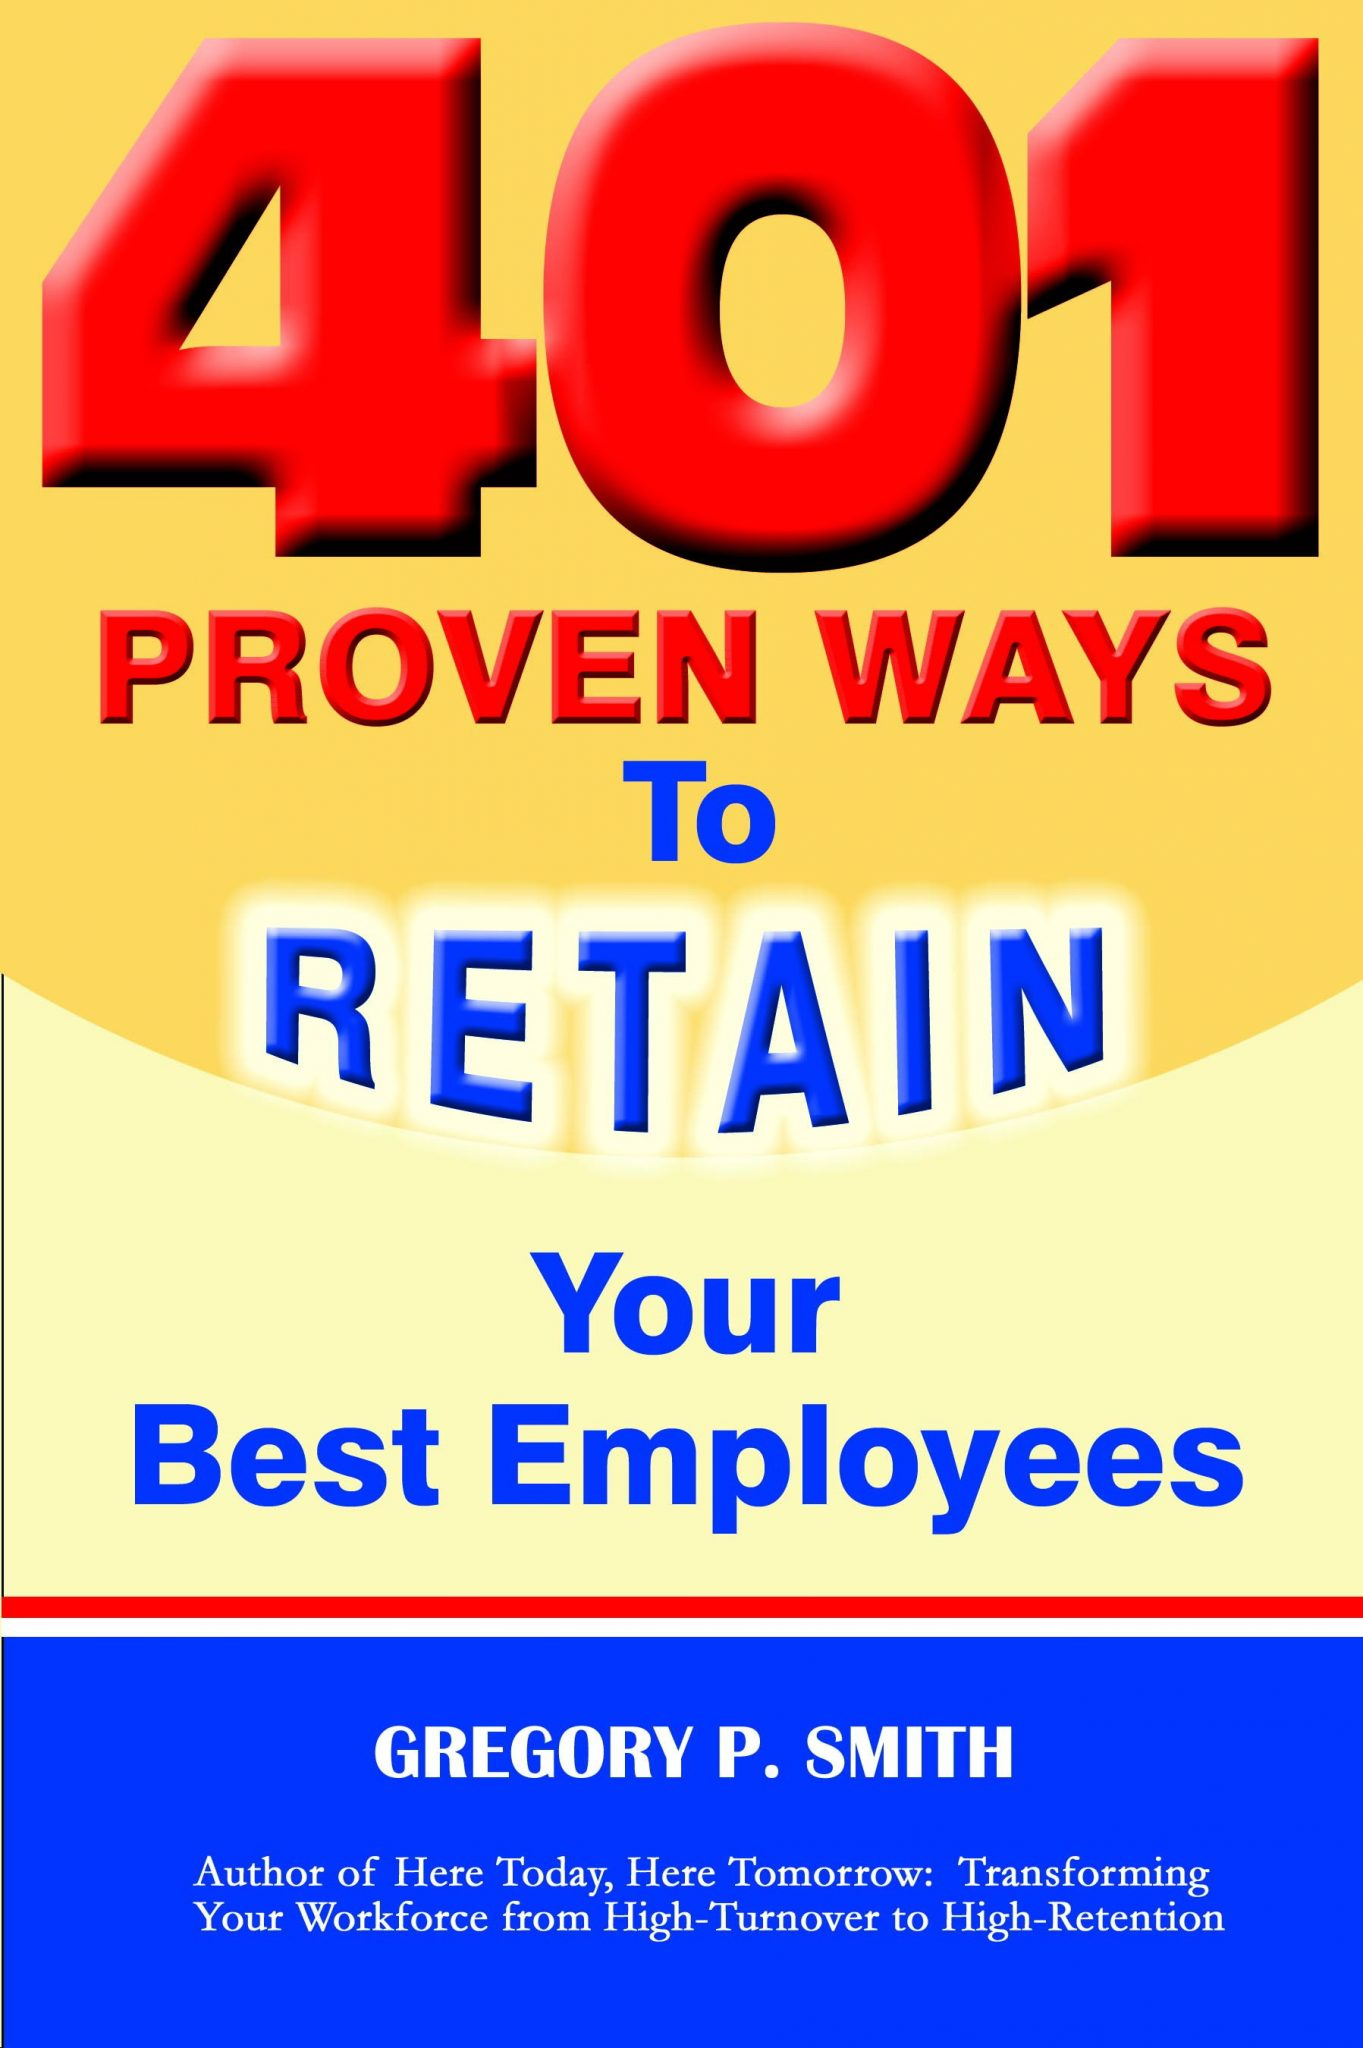 401 proven ways to retain your best employees | employee retention ideas